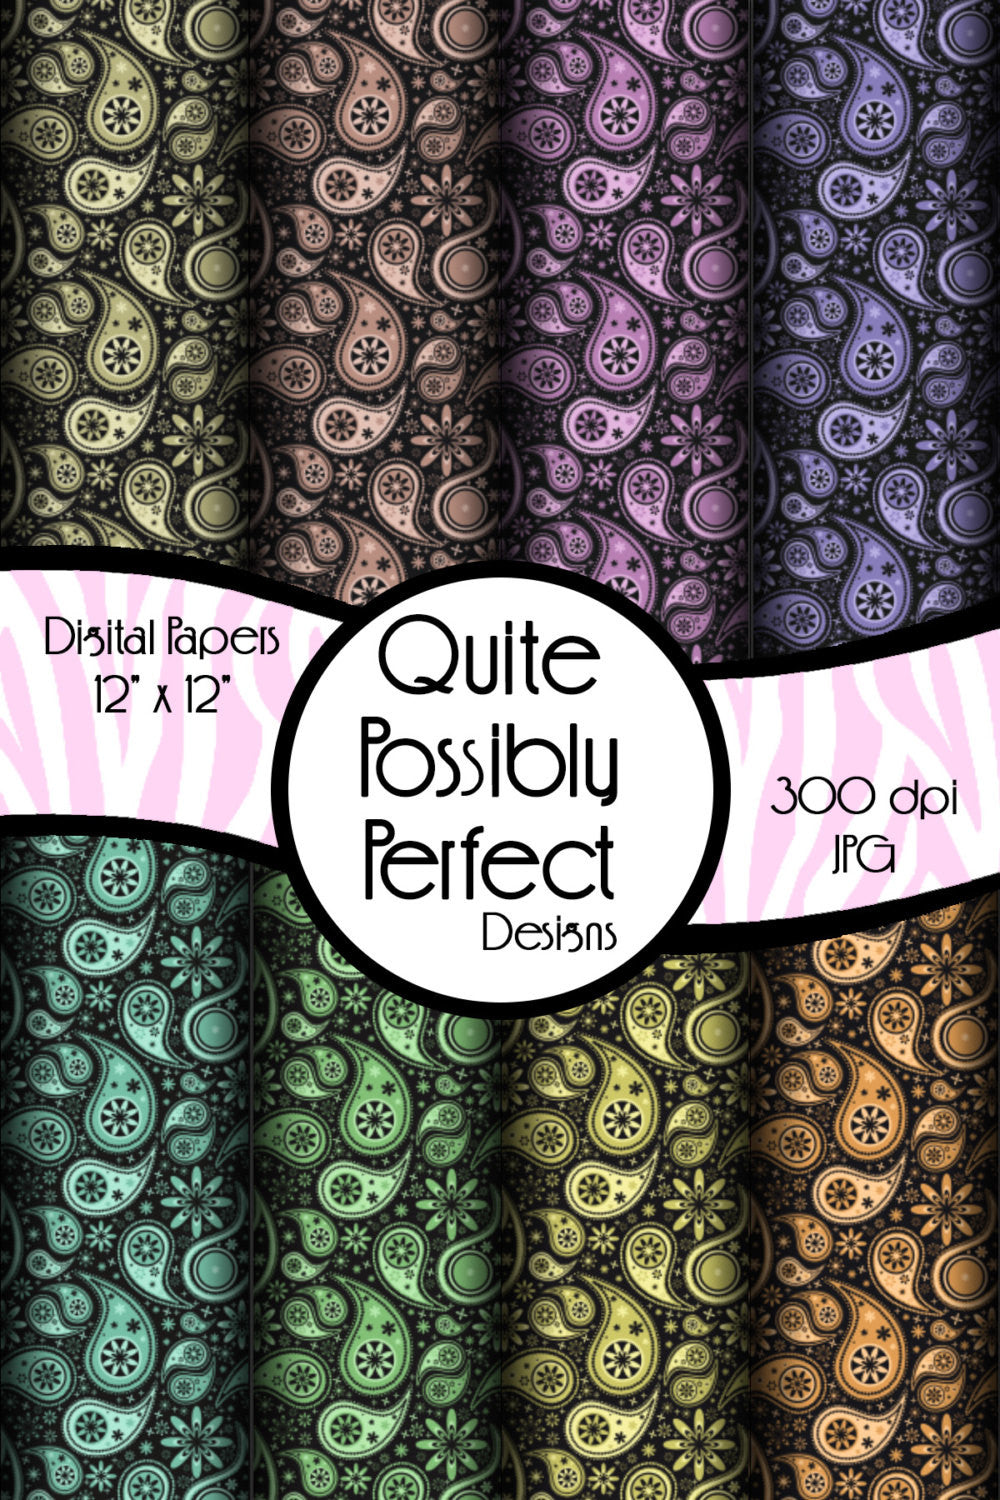 Paisley Digital Paper Pack Instant Download (DGP117) Digital Paper Pack for Scrapbooking, Collage Sheets,Greeting Cards, Bottle Caps